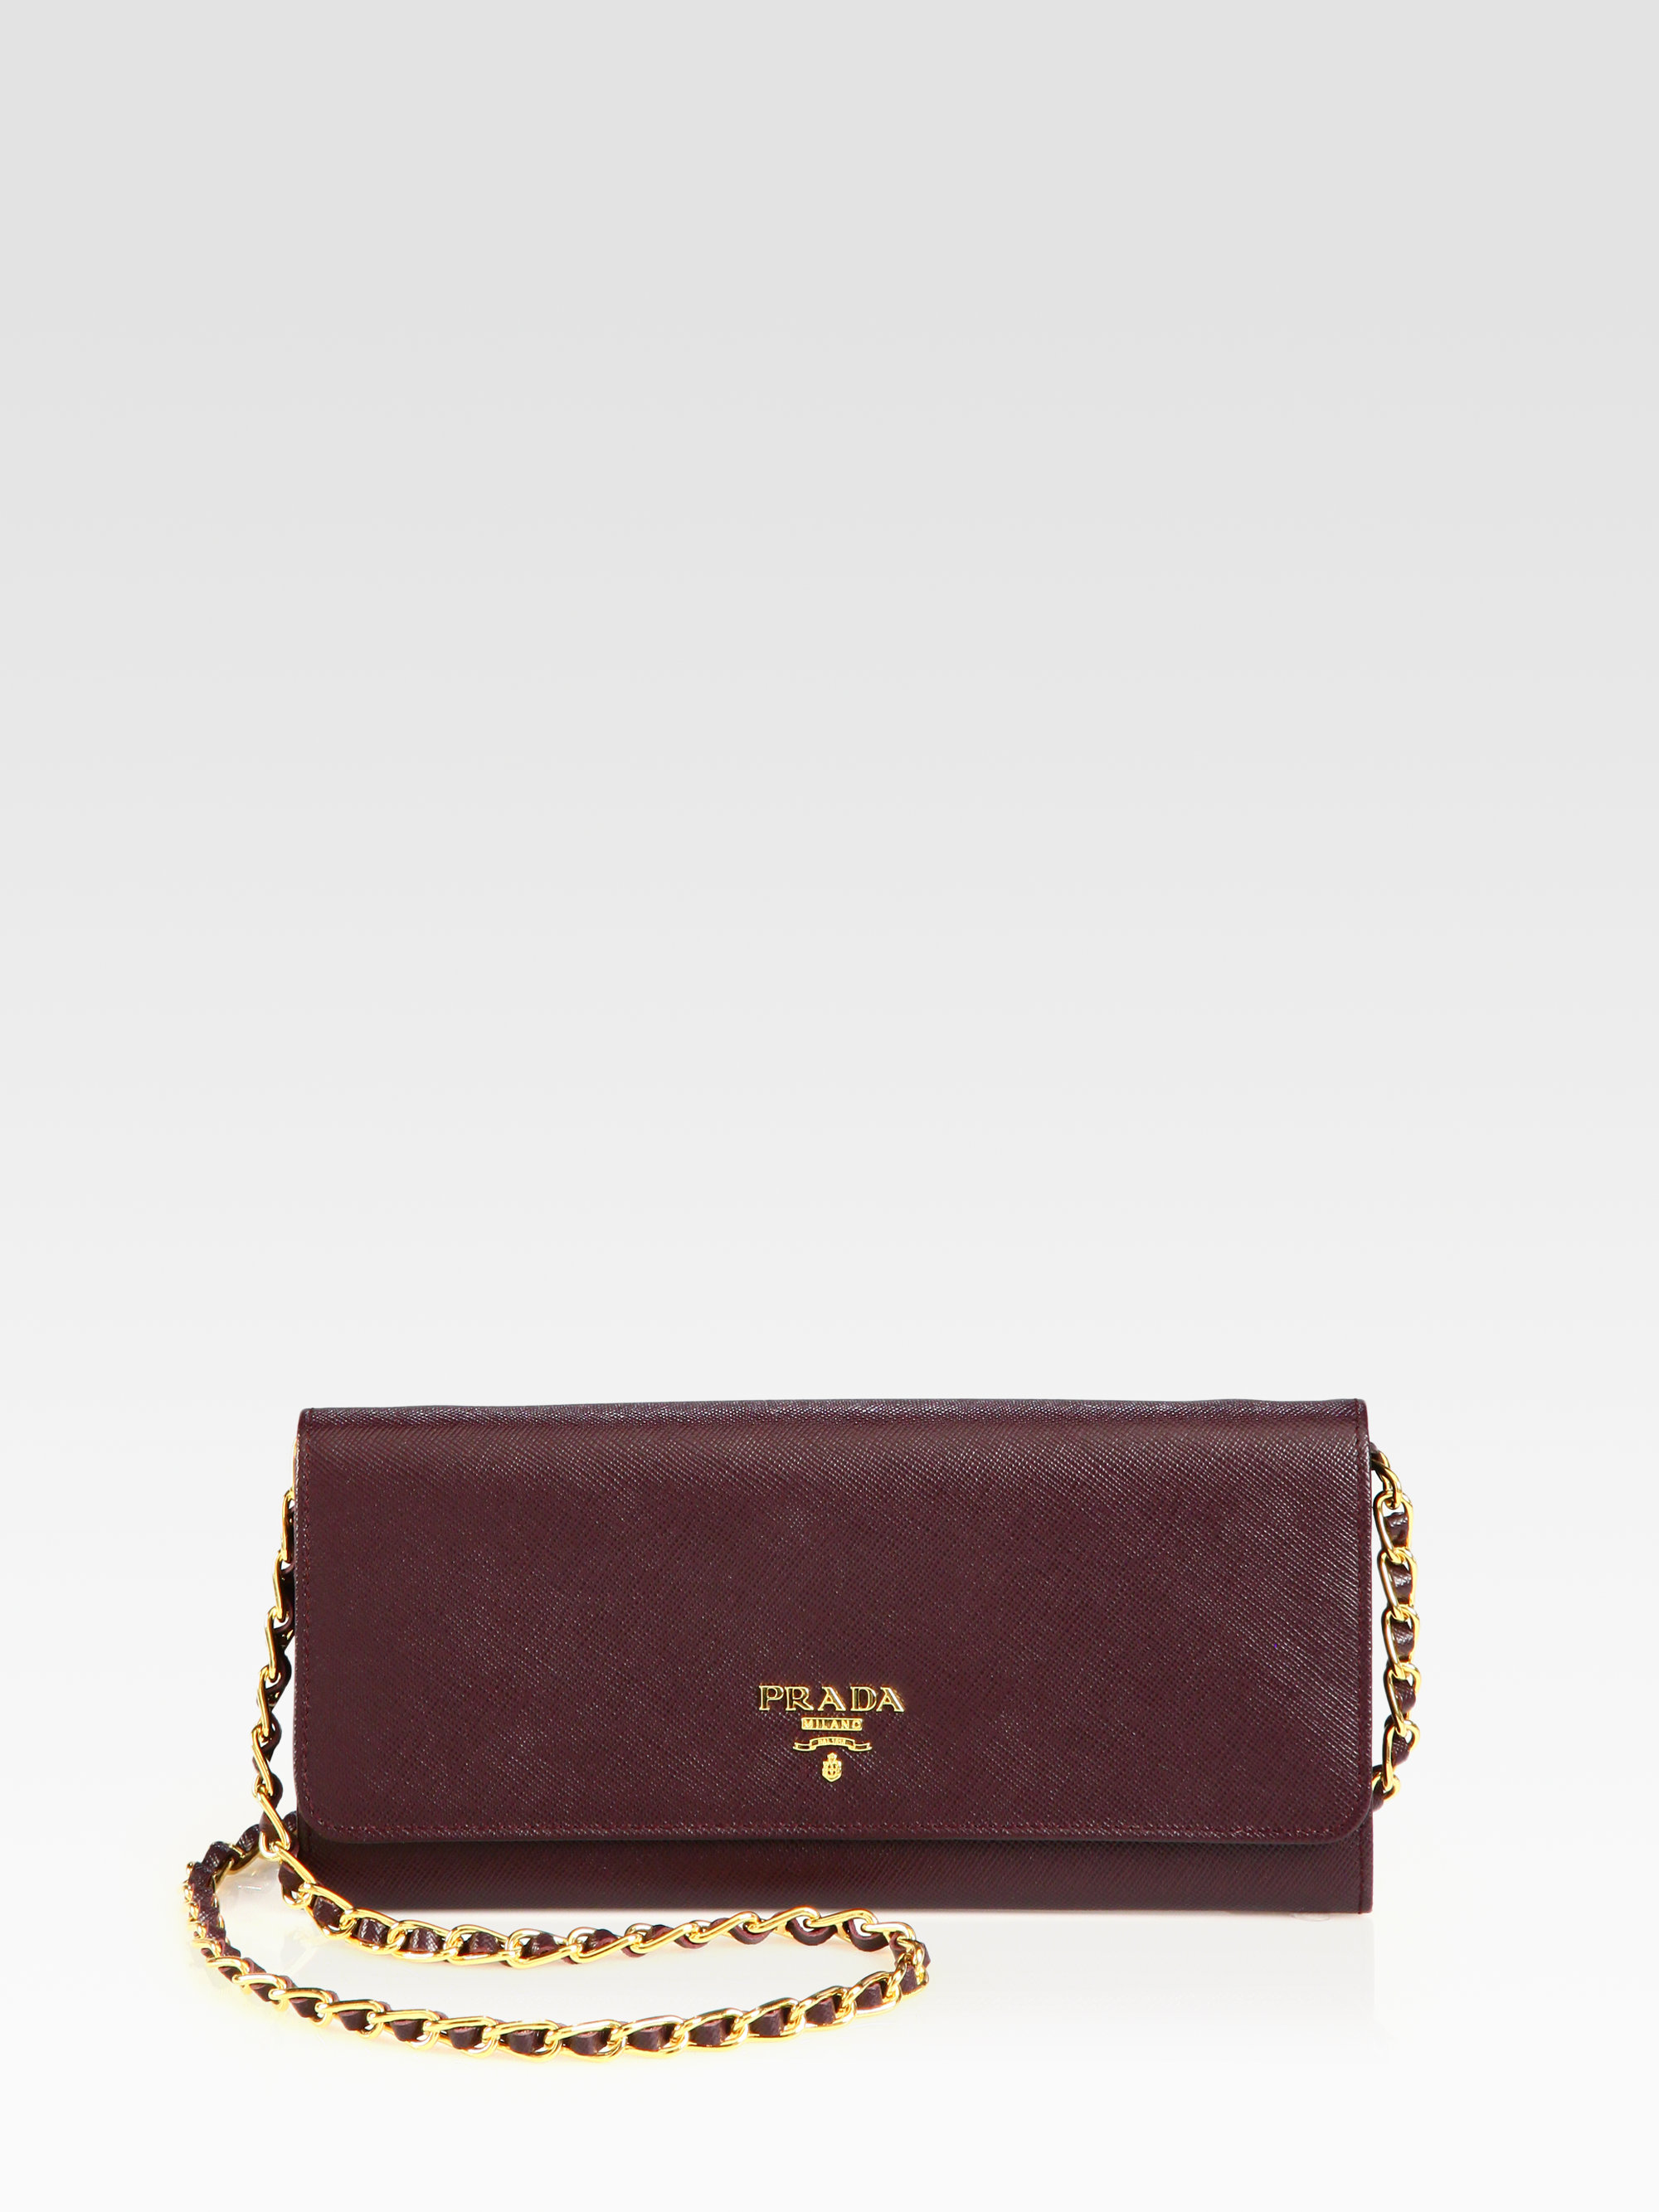 prada saffiano wallet with chain on sales